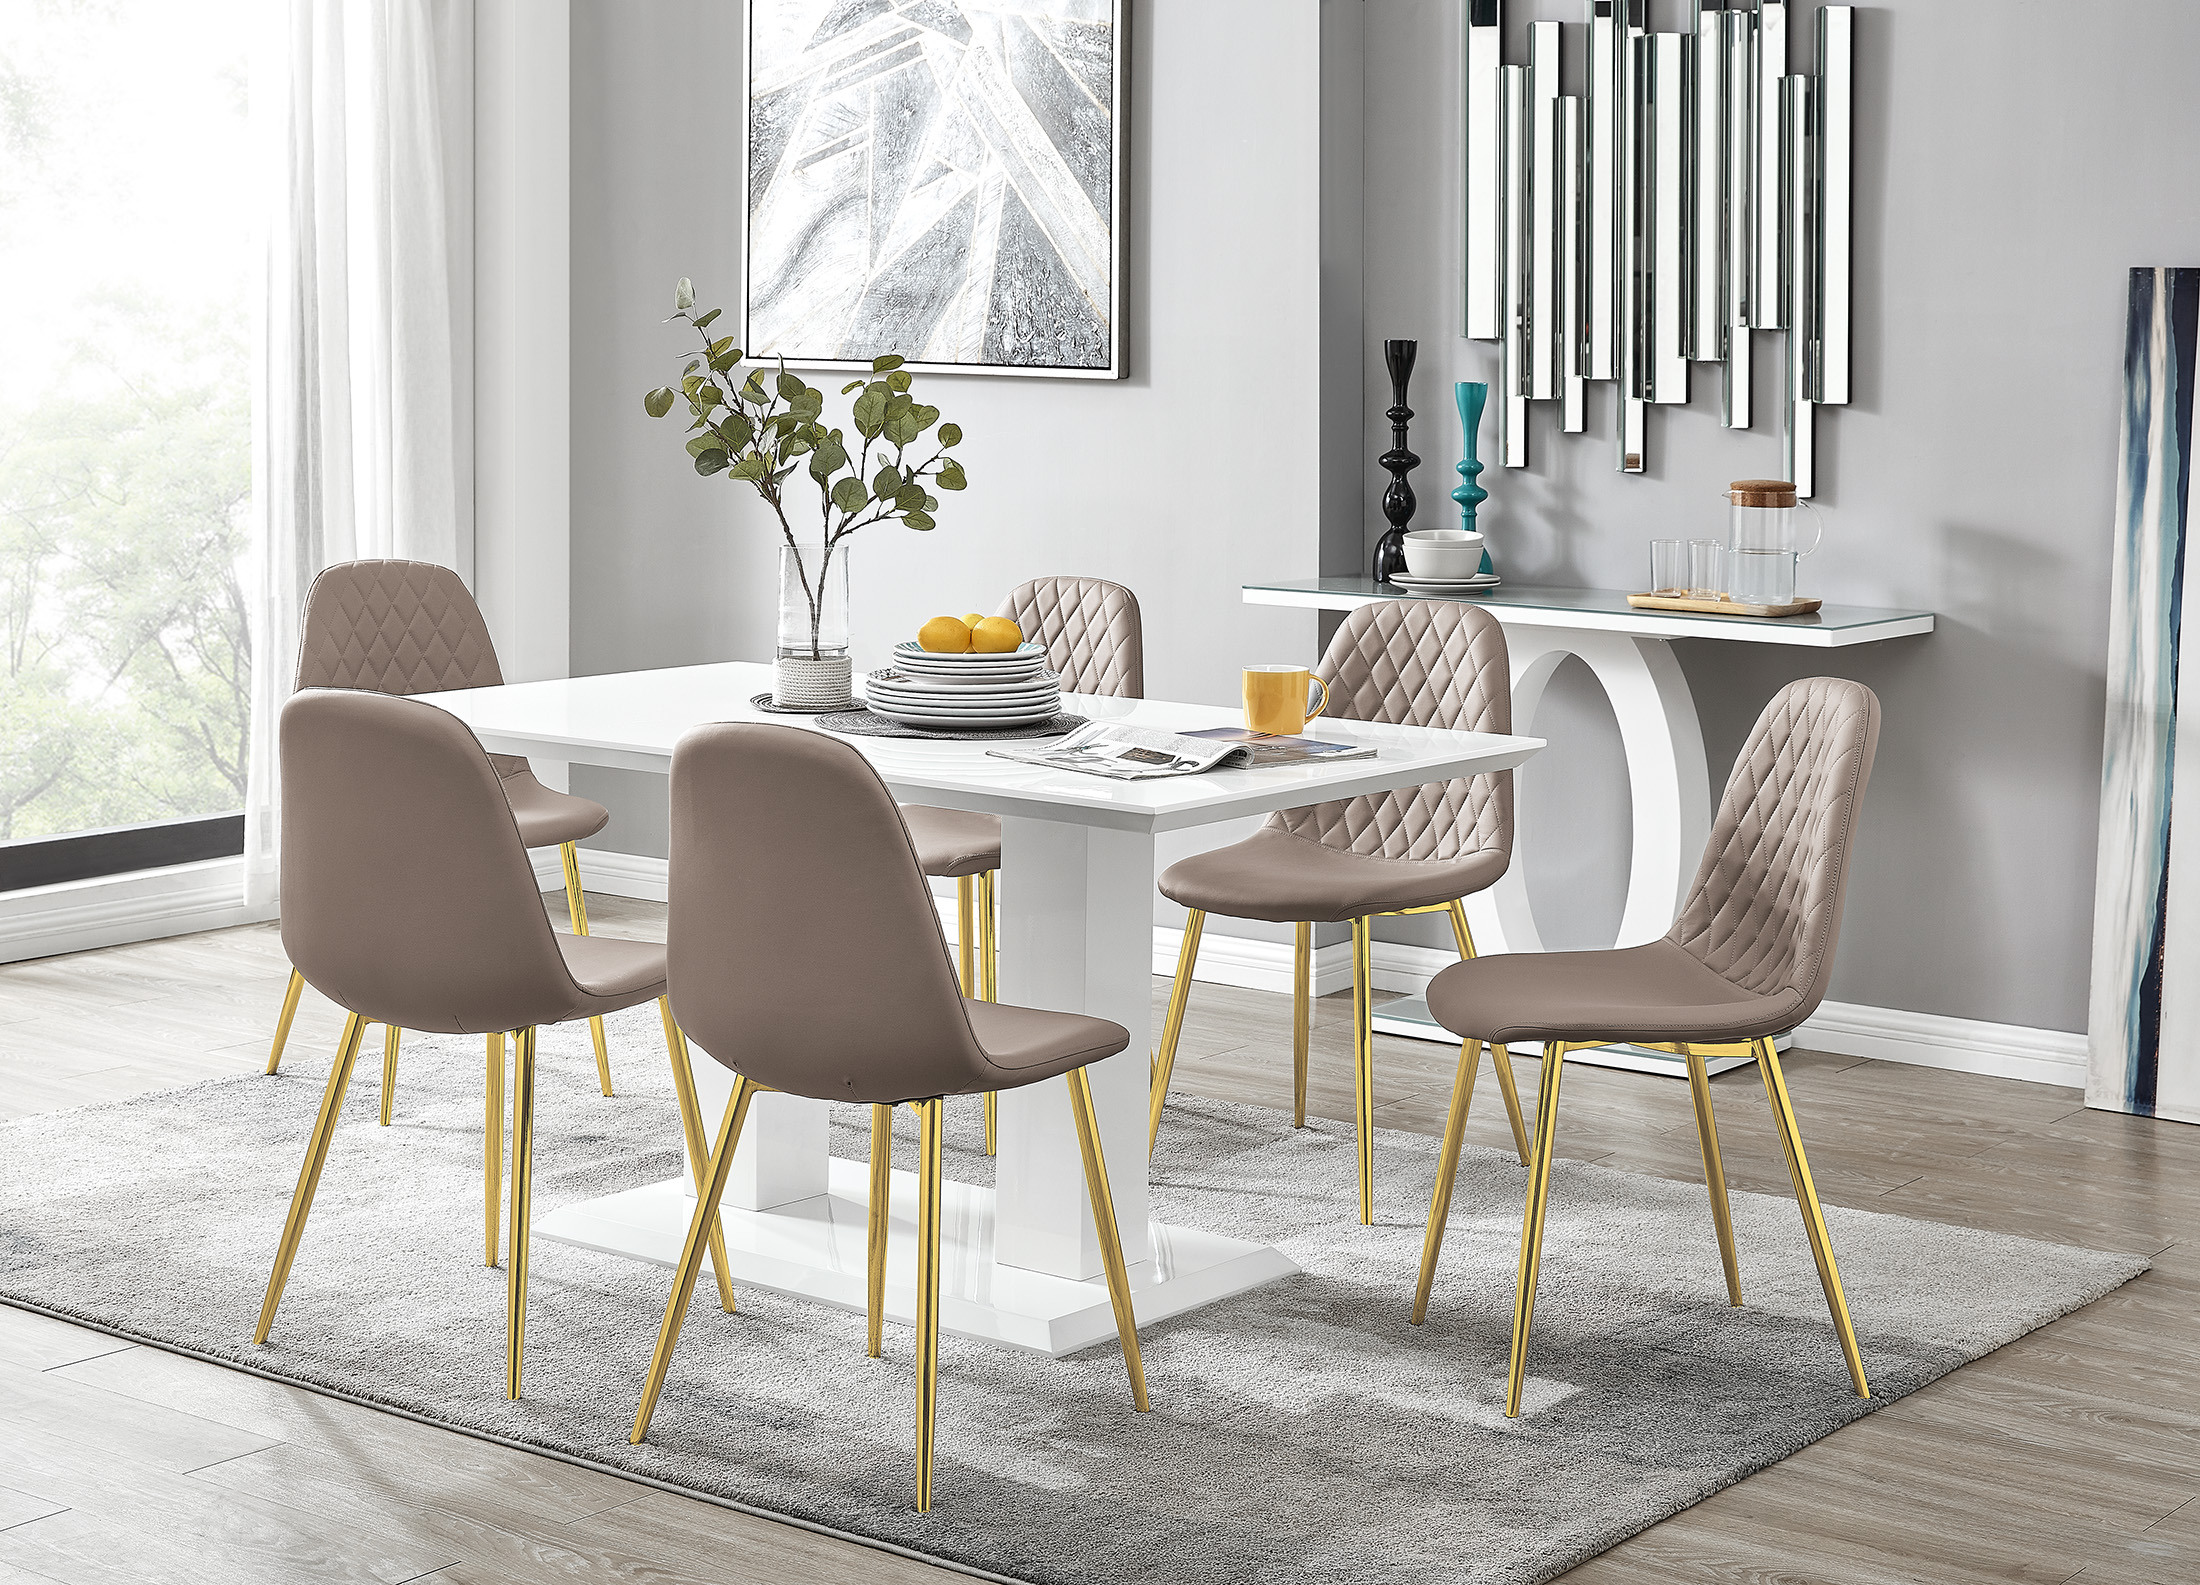 Imperia White Gloss Dining Table 6, White And Gold Dining Room Set